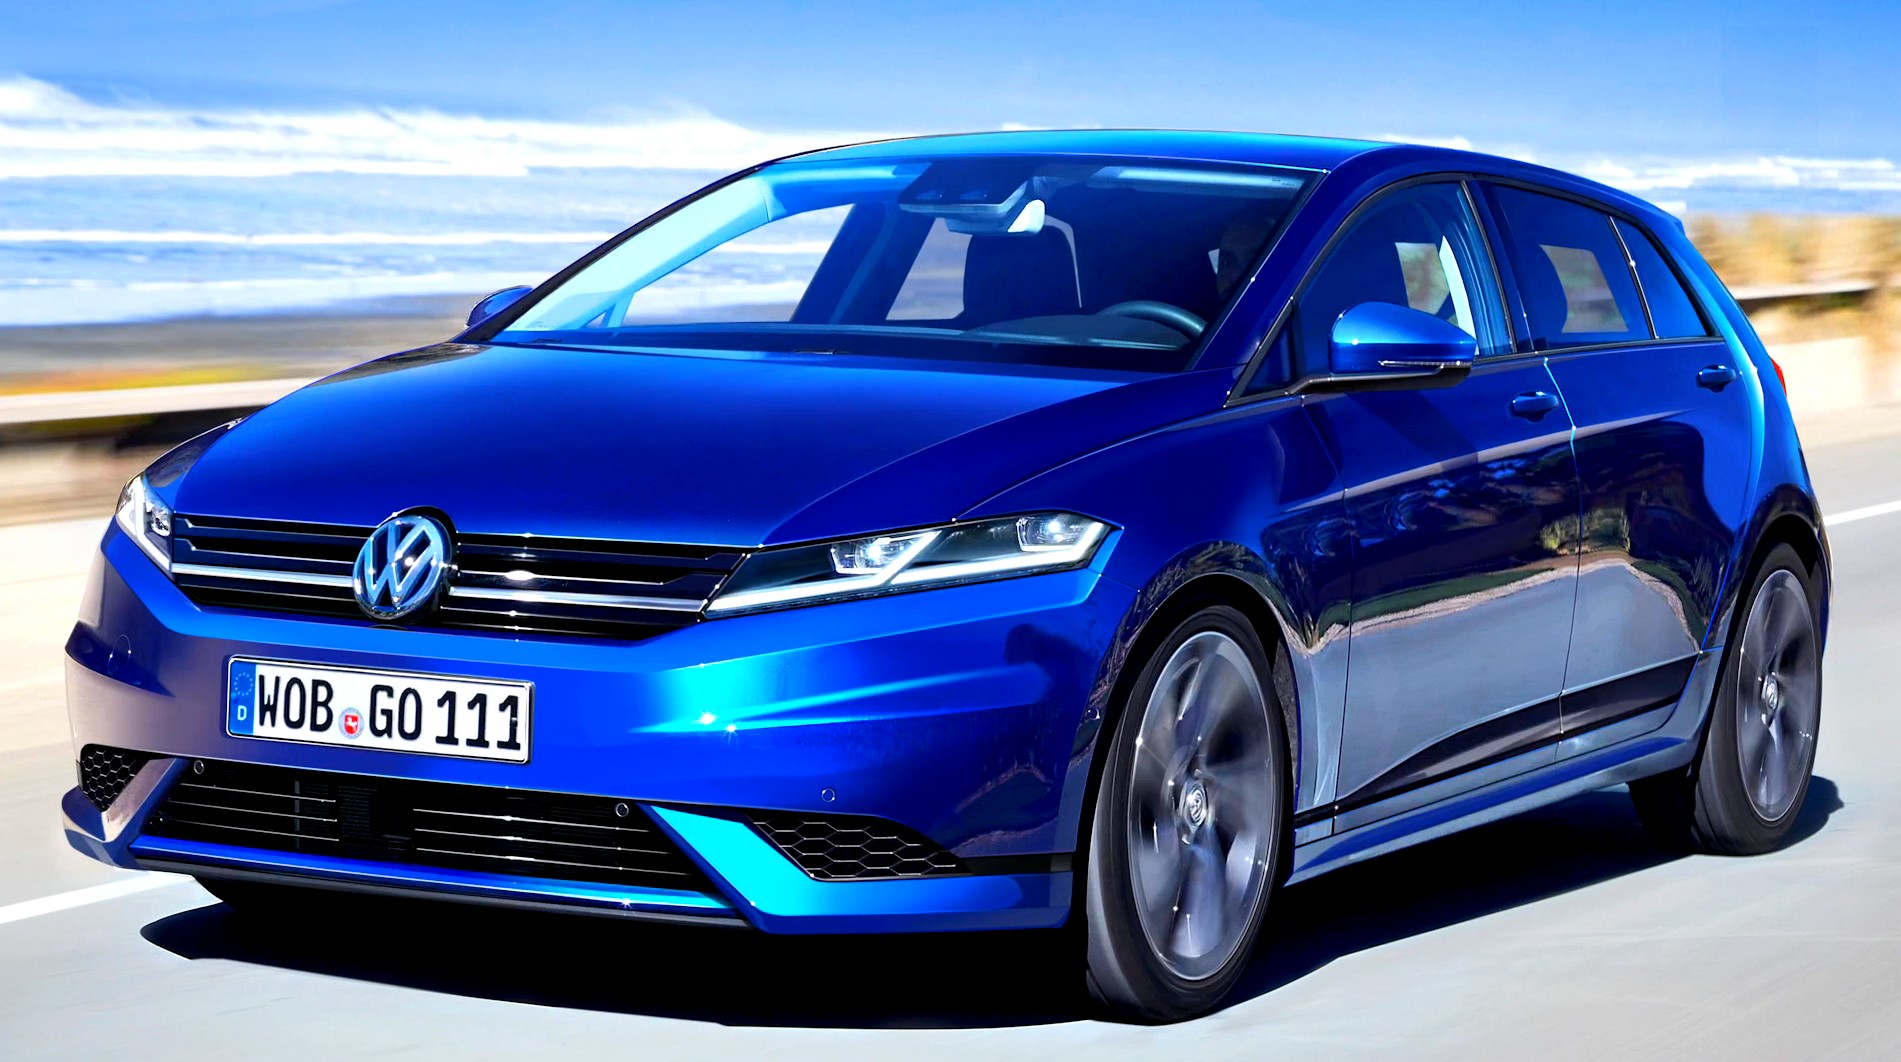 Vw moreover Vw Polo Beats 2016 Geneva Motor Show 220412 additionally Novo Peugeot 208 2016 Fotos E moreover Volkswagen Golf 7 Dynaudio Excite Sound System 8 Speakers Subwoofer  lifier Vw Gti R Oem additionally T Roc. on vw polo gti